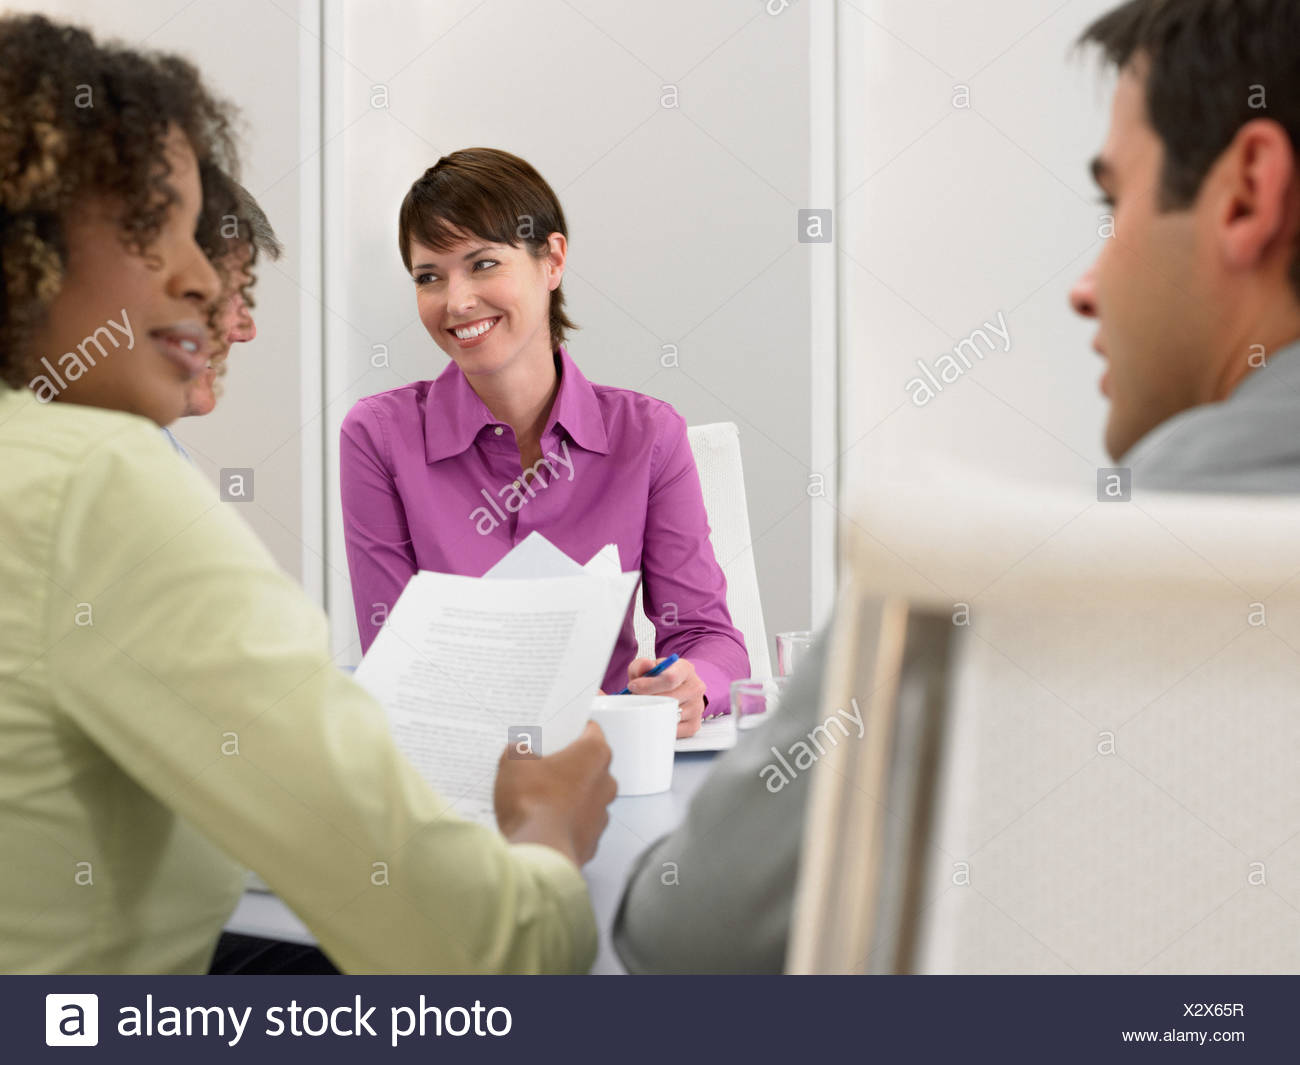 People in a meeting - Stock Image